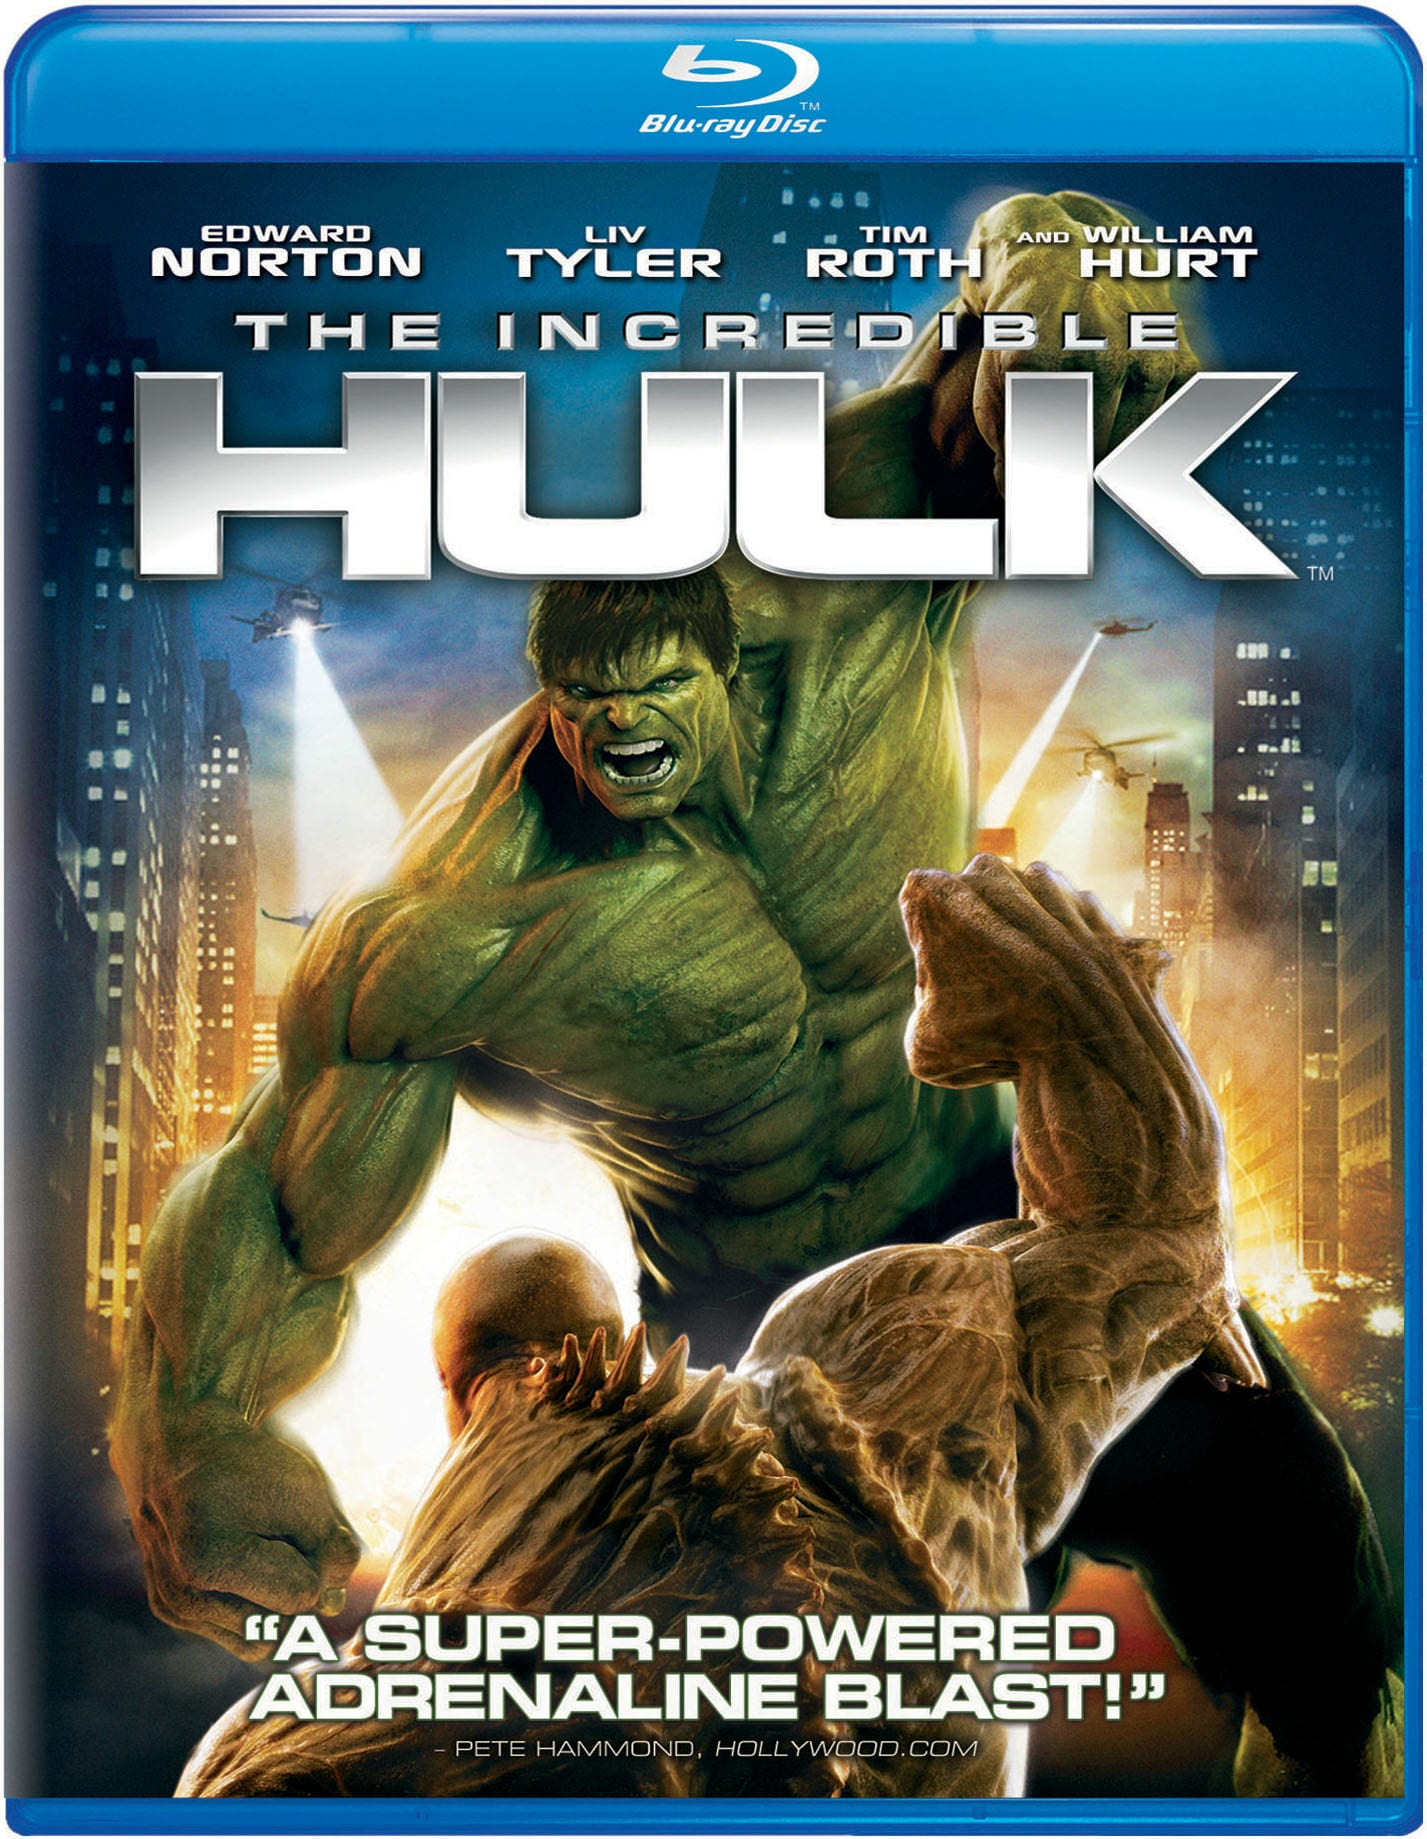 The Incredible Hulk (2012) [Blu-ray]